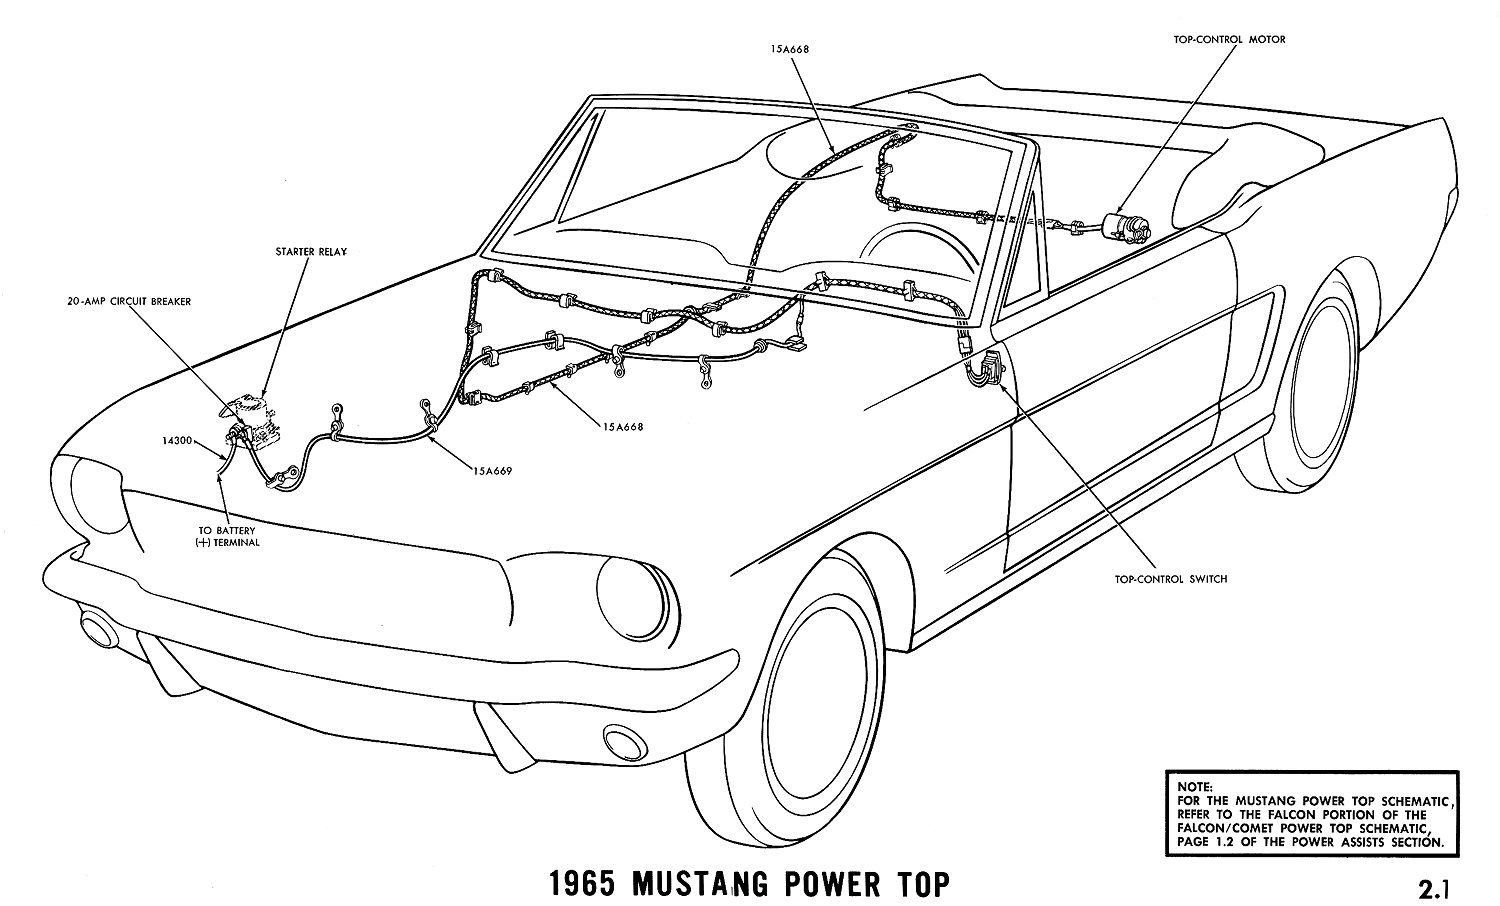 1965j 1965 mustang wiring diagrams average joe restoration 1966 mustang starter solenoid wiring diagram at bayanpartner.co